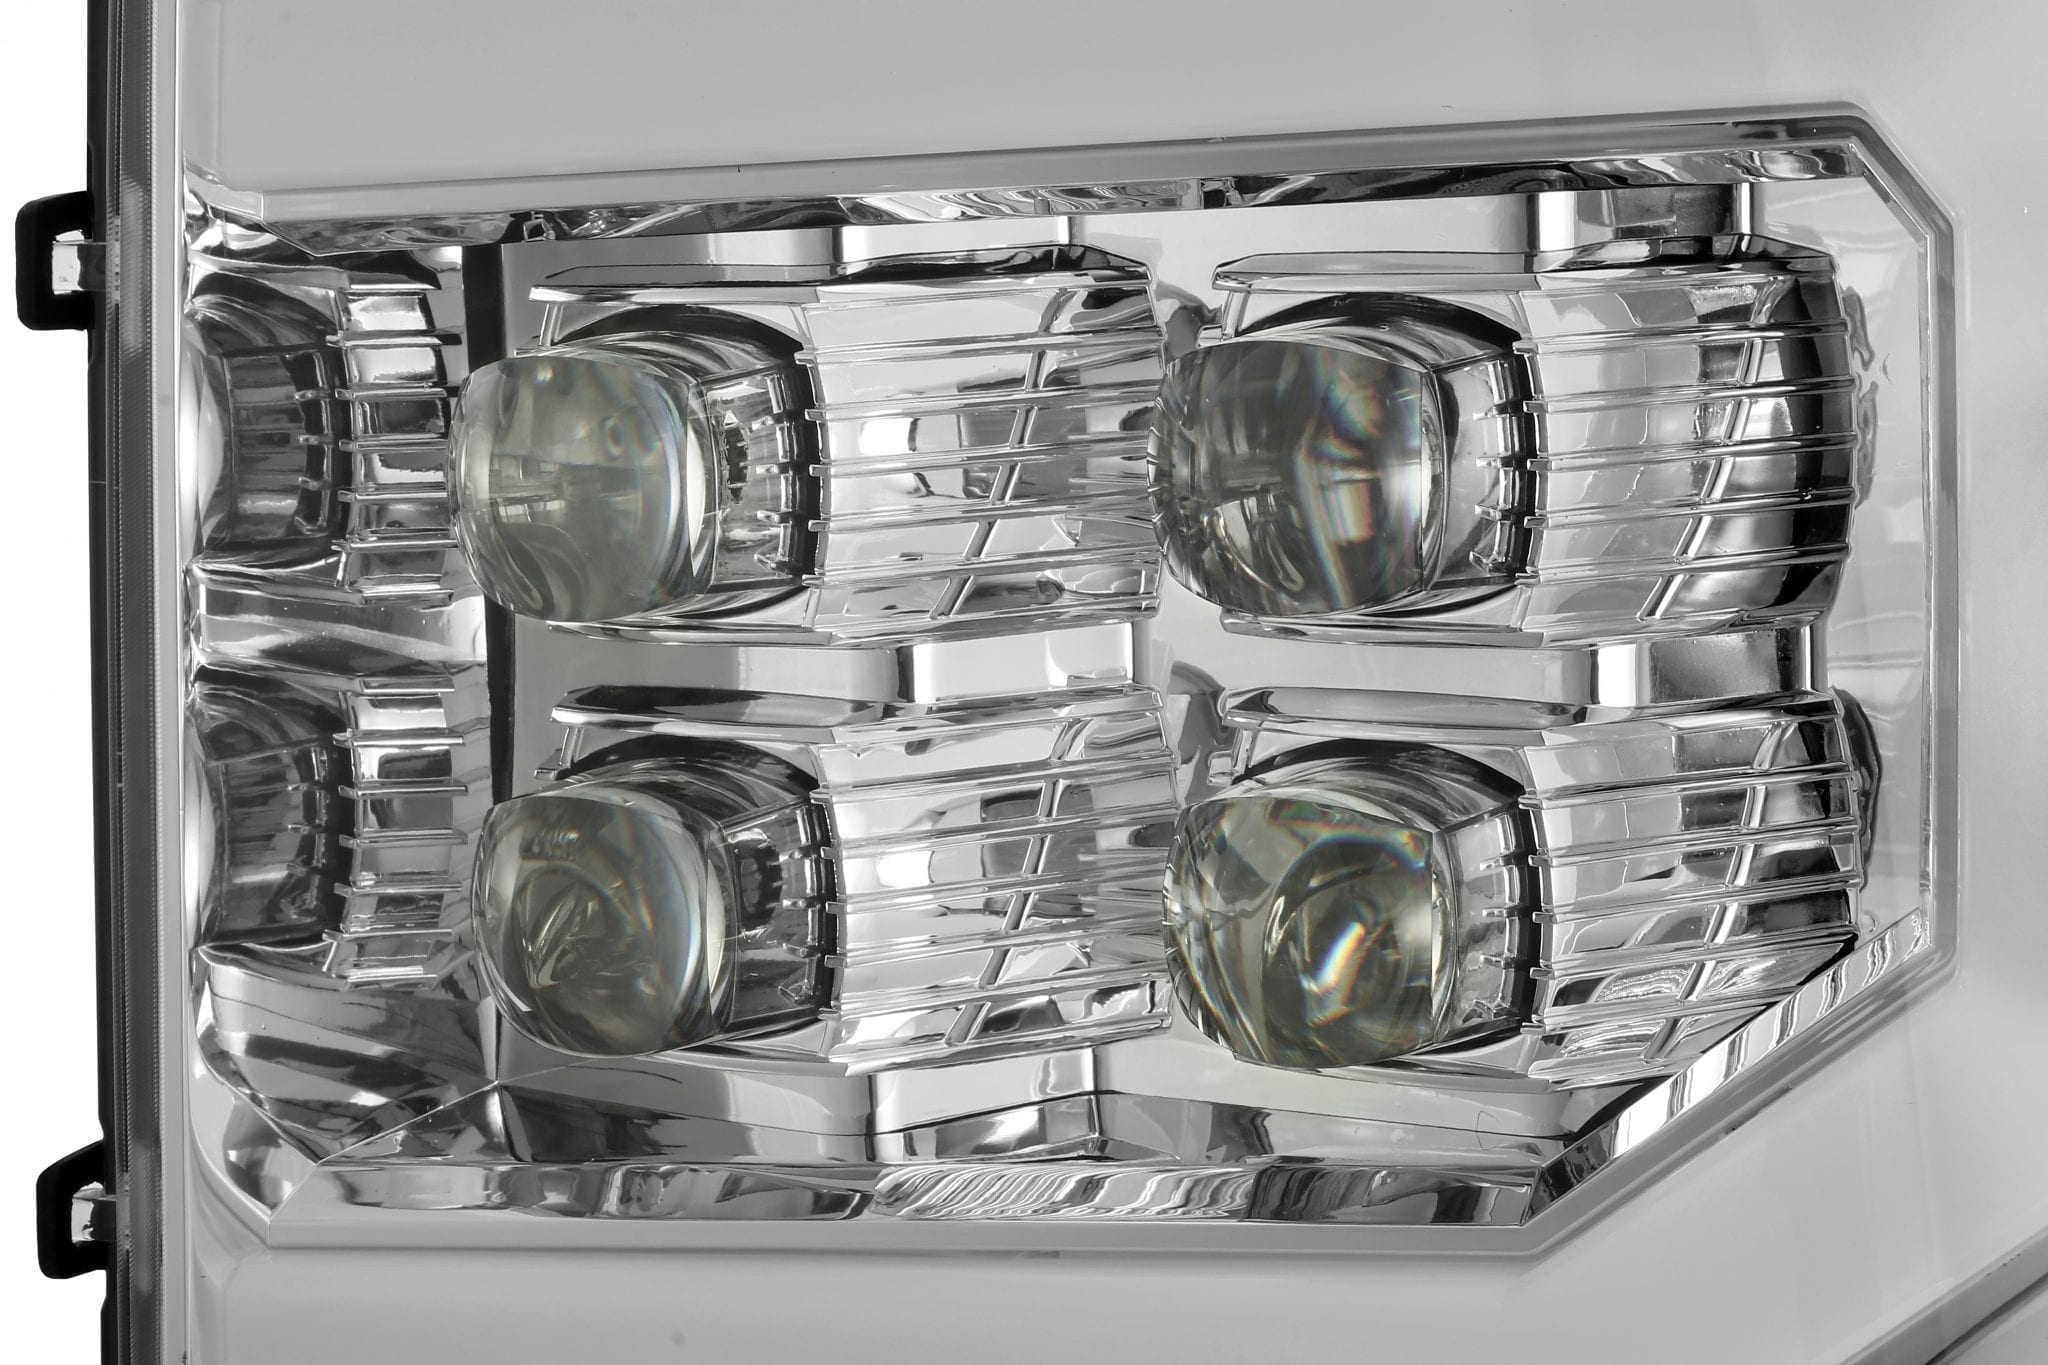 2007 2008 2009 2010 2011 2012 2013 GMC Sierra NOVA-Series Projector Headlights Chrome